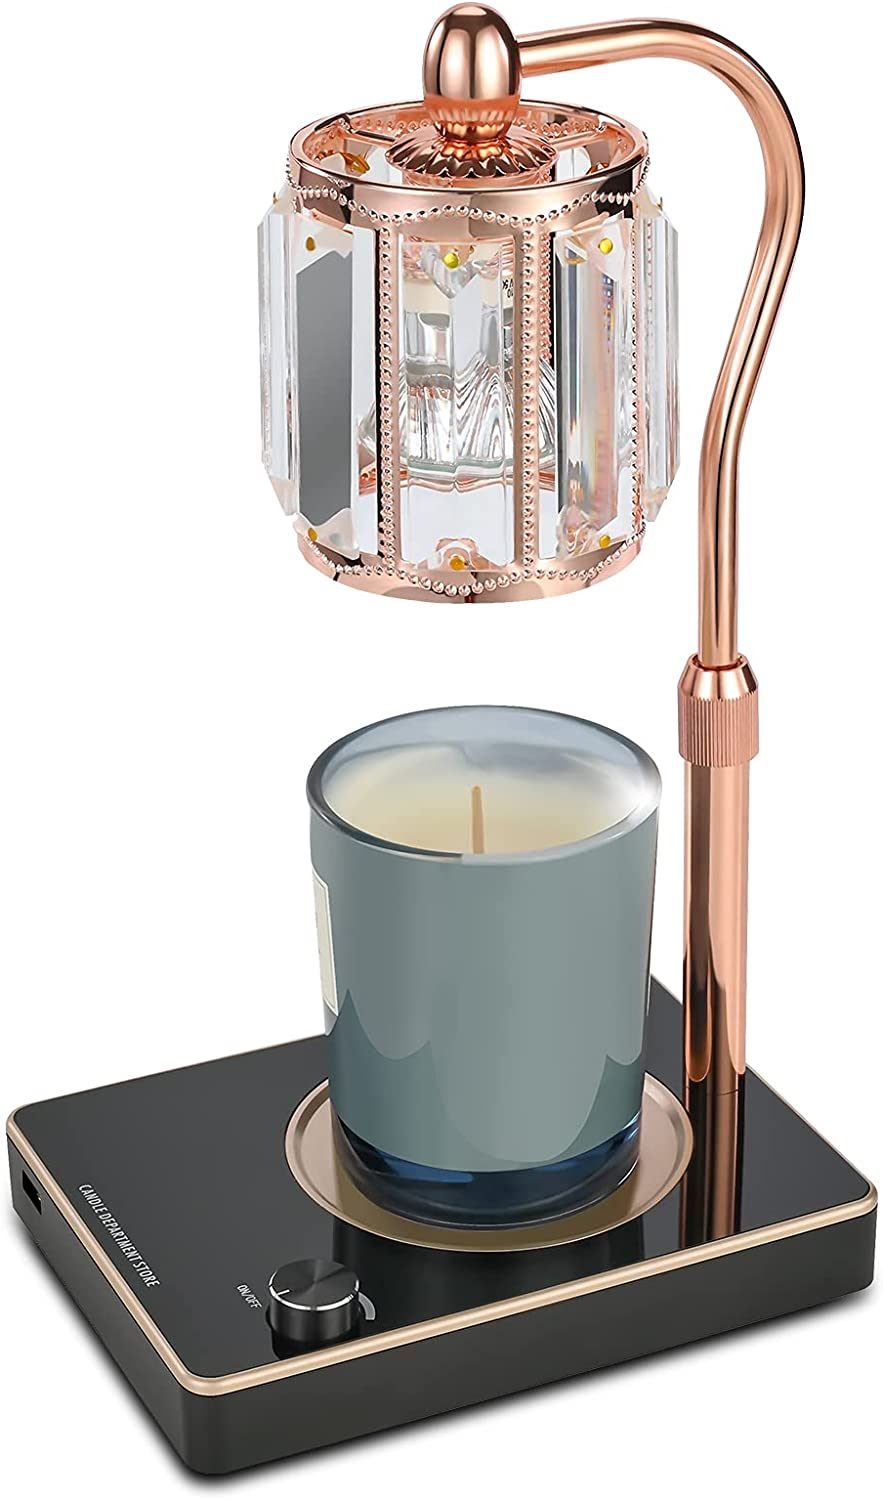 Candle Wax Lamp,Crystal Lampshade Fragrance Candle Warmer Lamp,Top-Down Wax Melting Lamp with USB Port,Adjustable Height and Brightness Electric Candle Wax Warmer for Home Bedroom Decor. (Black)